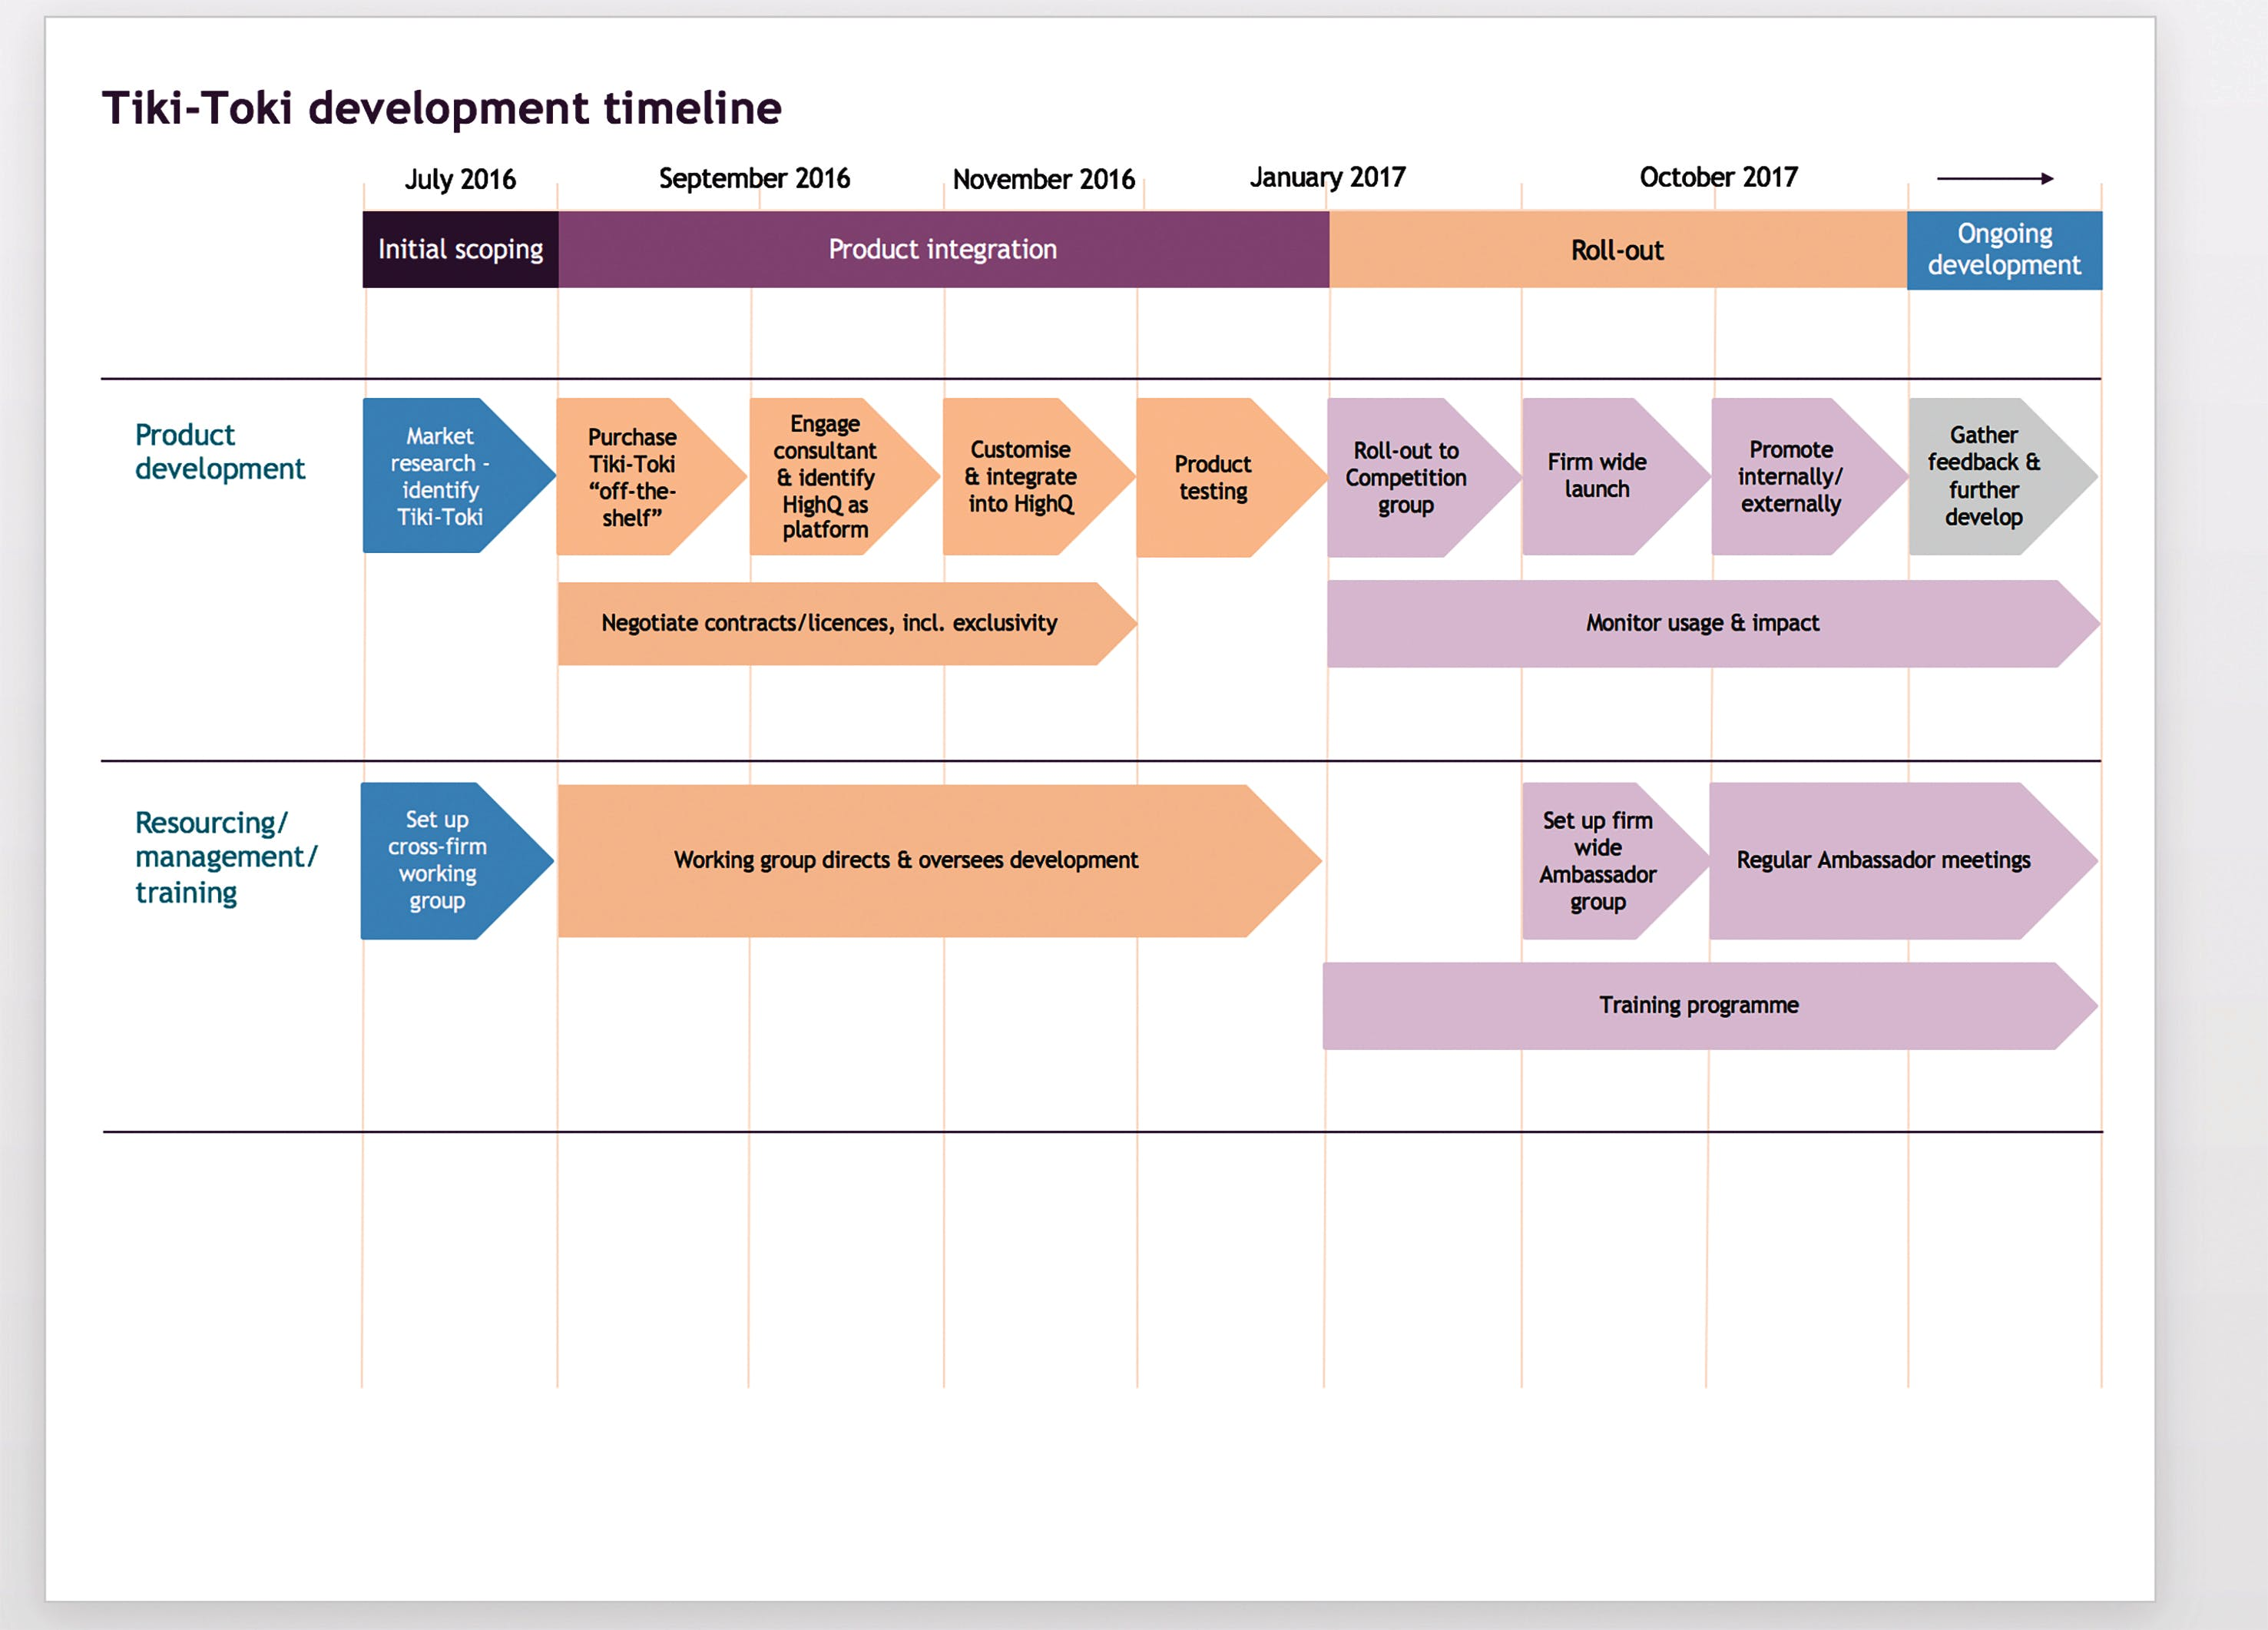 Flow chart showing development timeline of tiki-toki app development at Slaughters and May